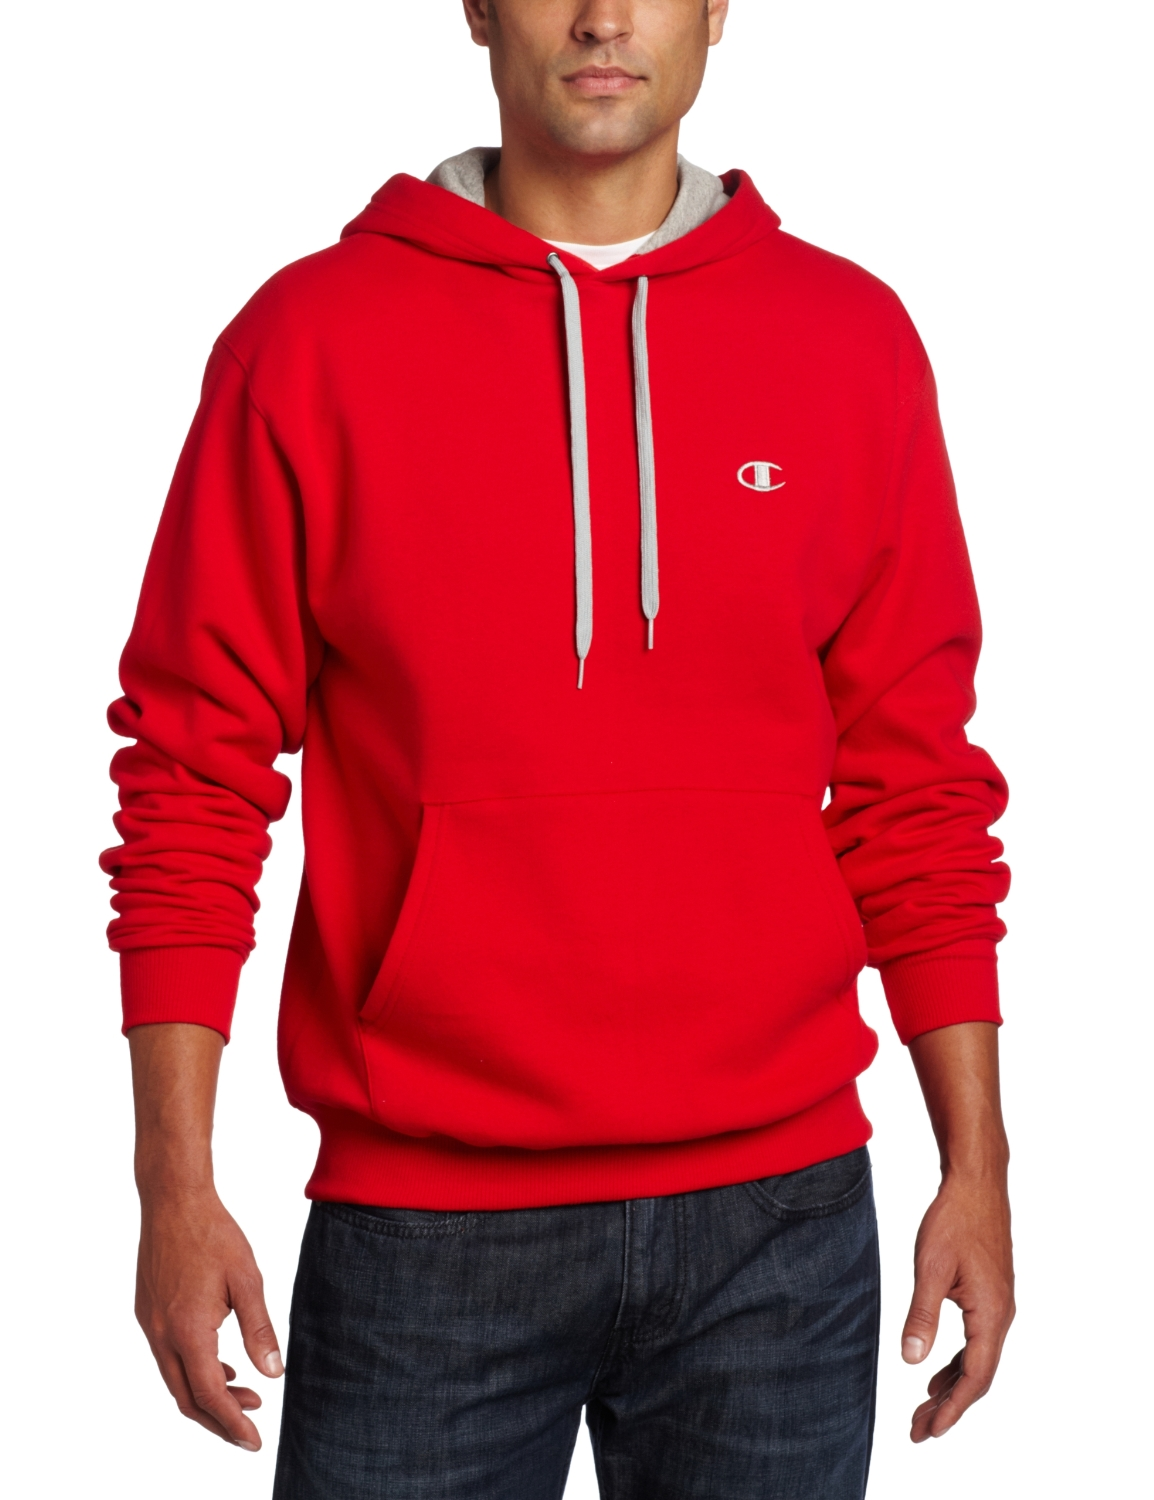 S2467 champion eco fleece pullover men 39 s hoodie for Pull over shirts for mens